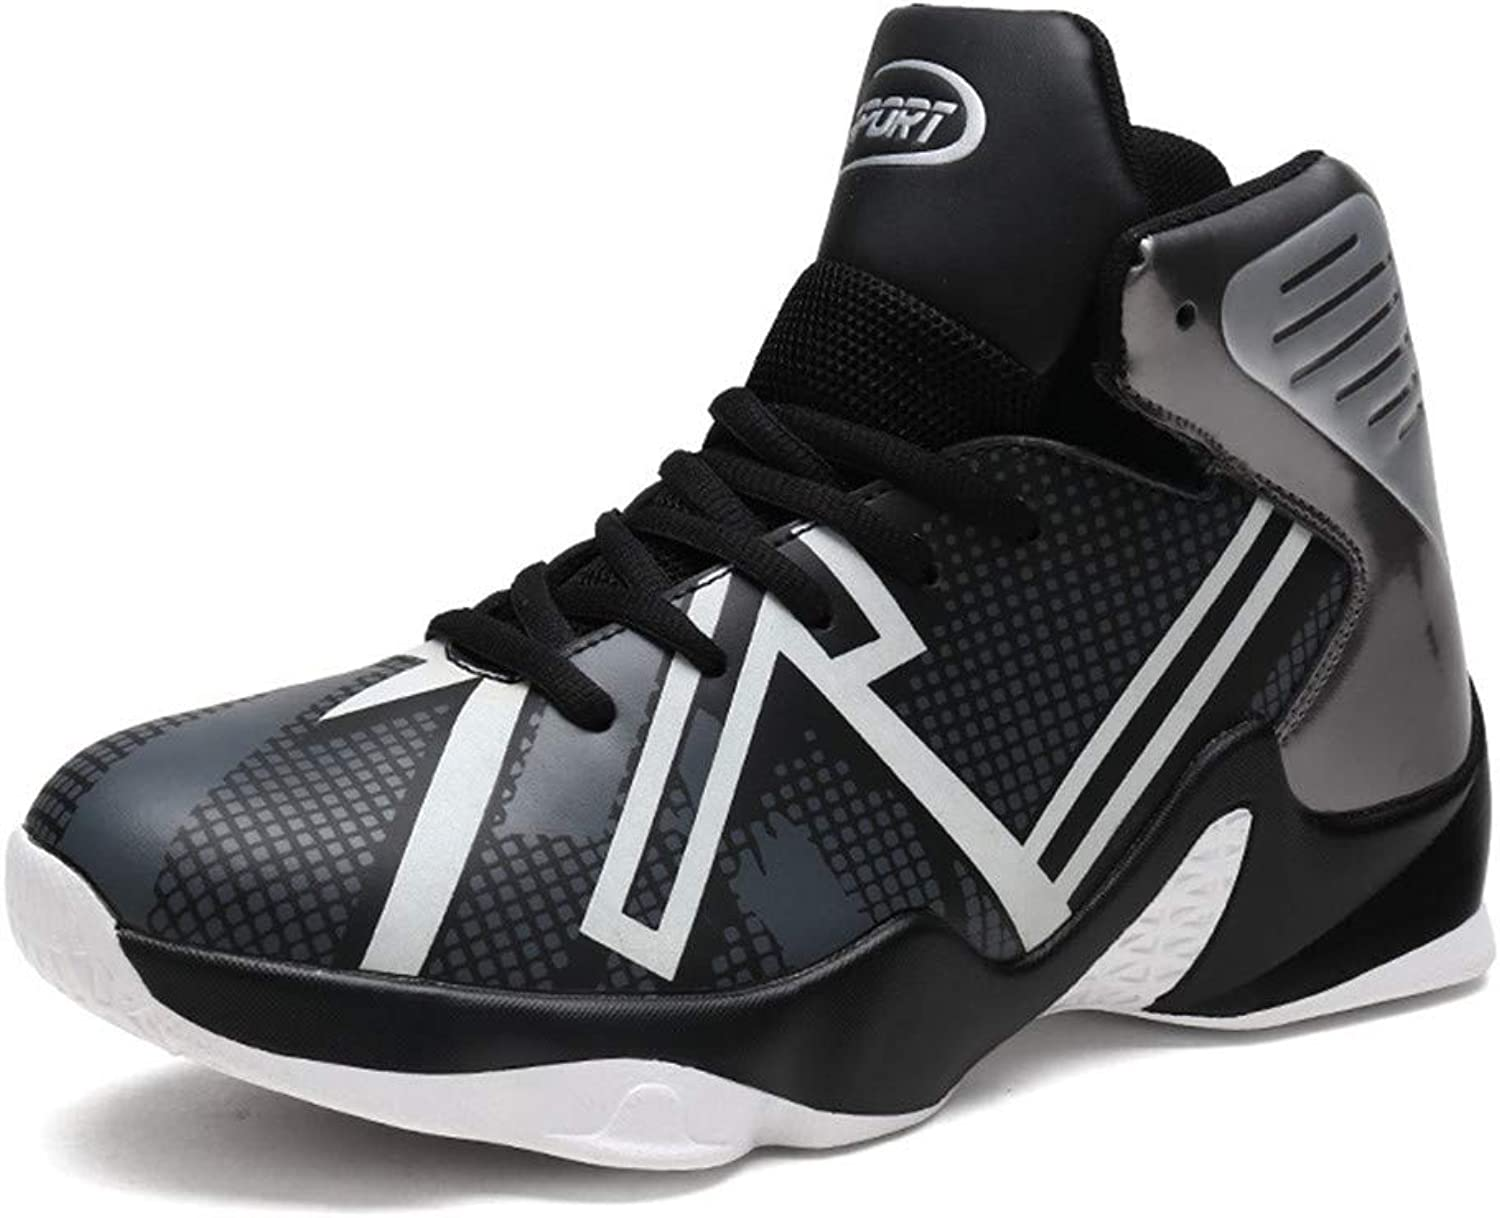 Mens High Top Basketball shoes Fashion Breathable Sports shoes Non-Slip Wear-Resistant Shock-Absorbing Boots